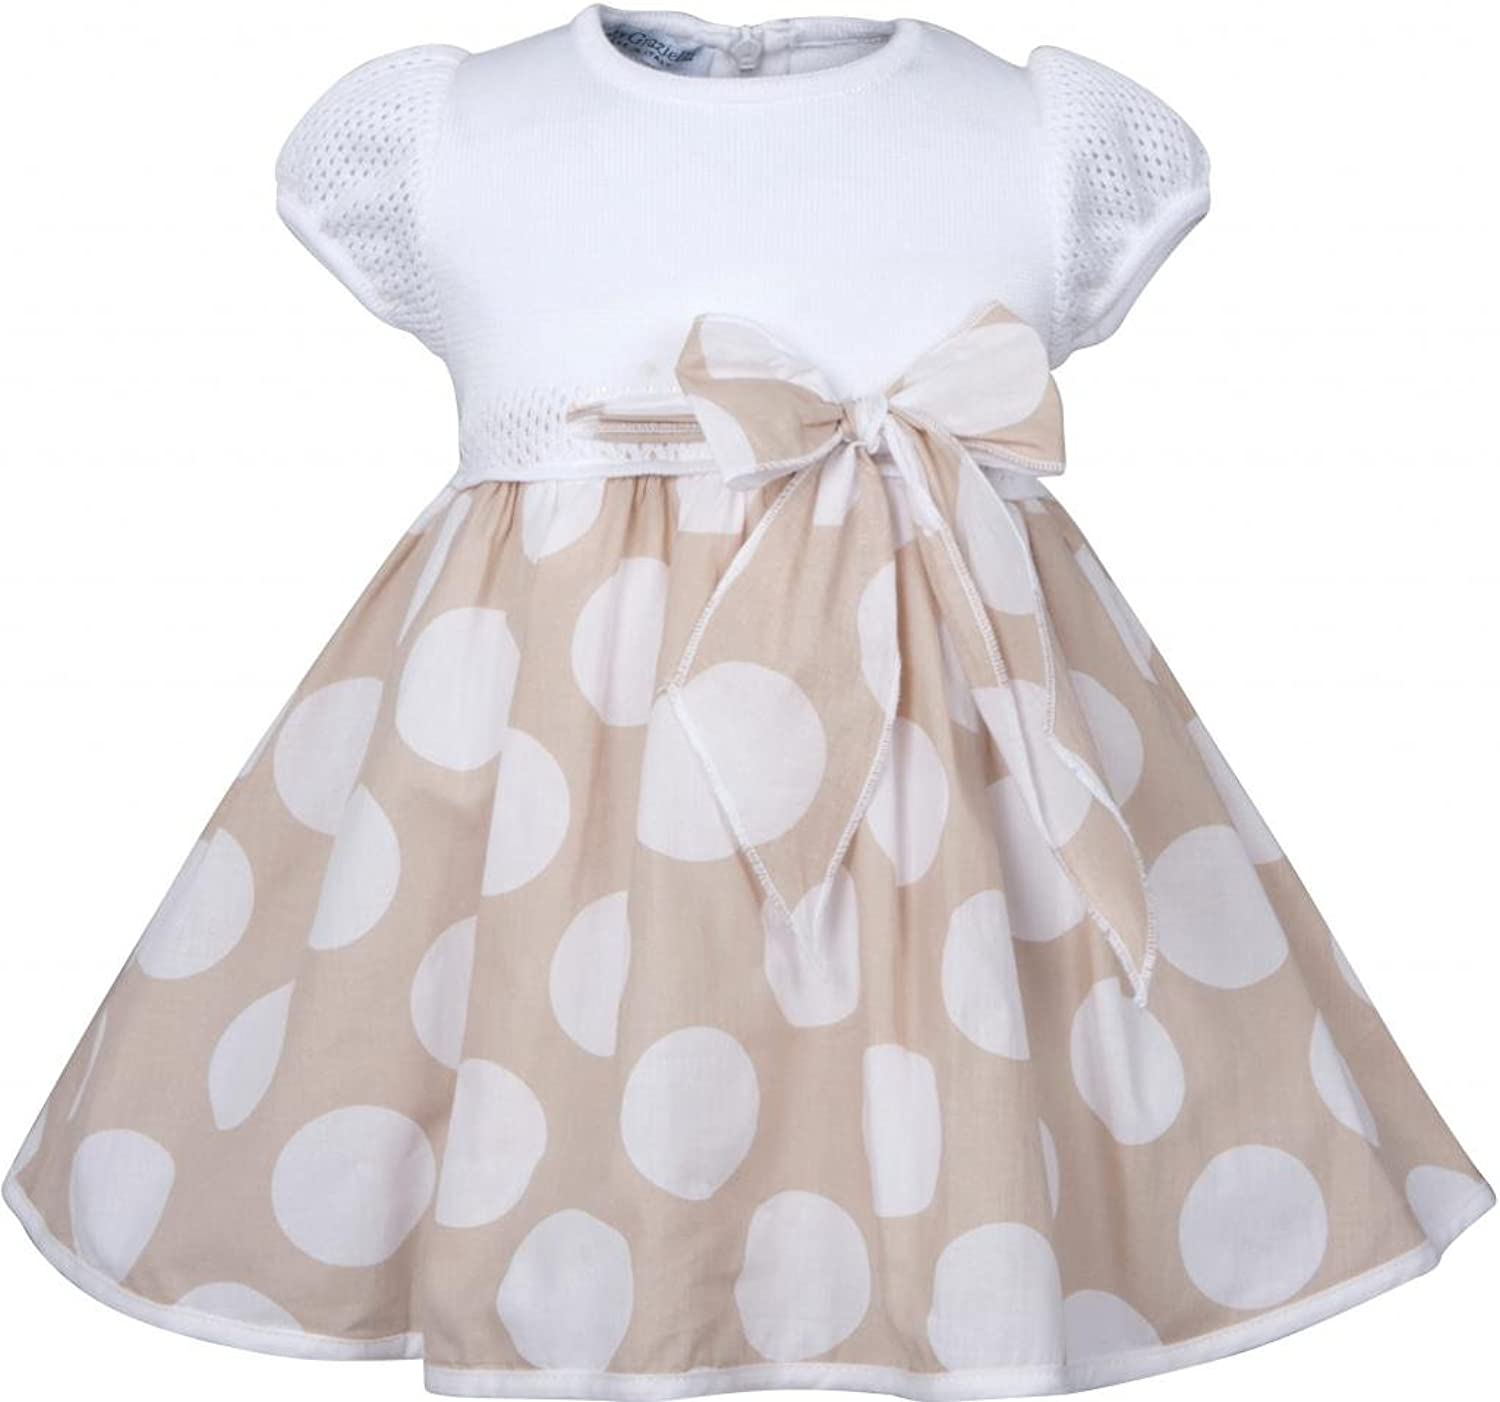 Amazon Baby Graziella Baby girls Polka Dot Dress with Bow